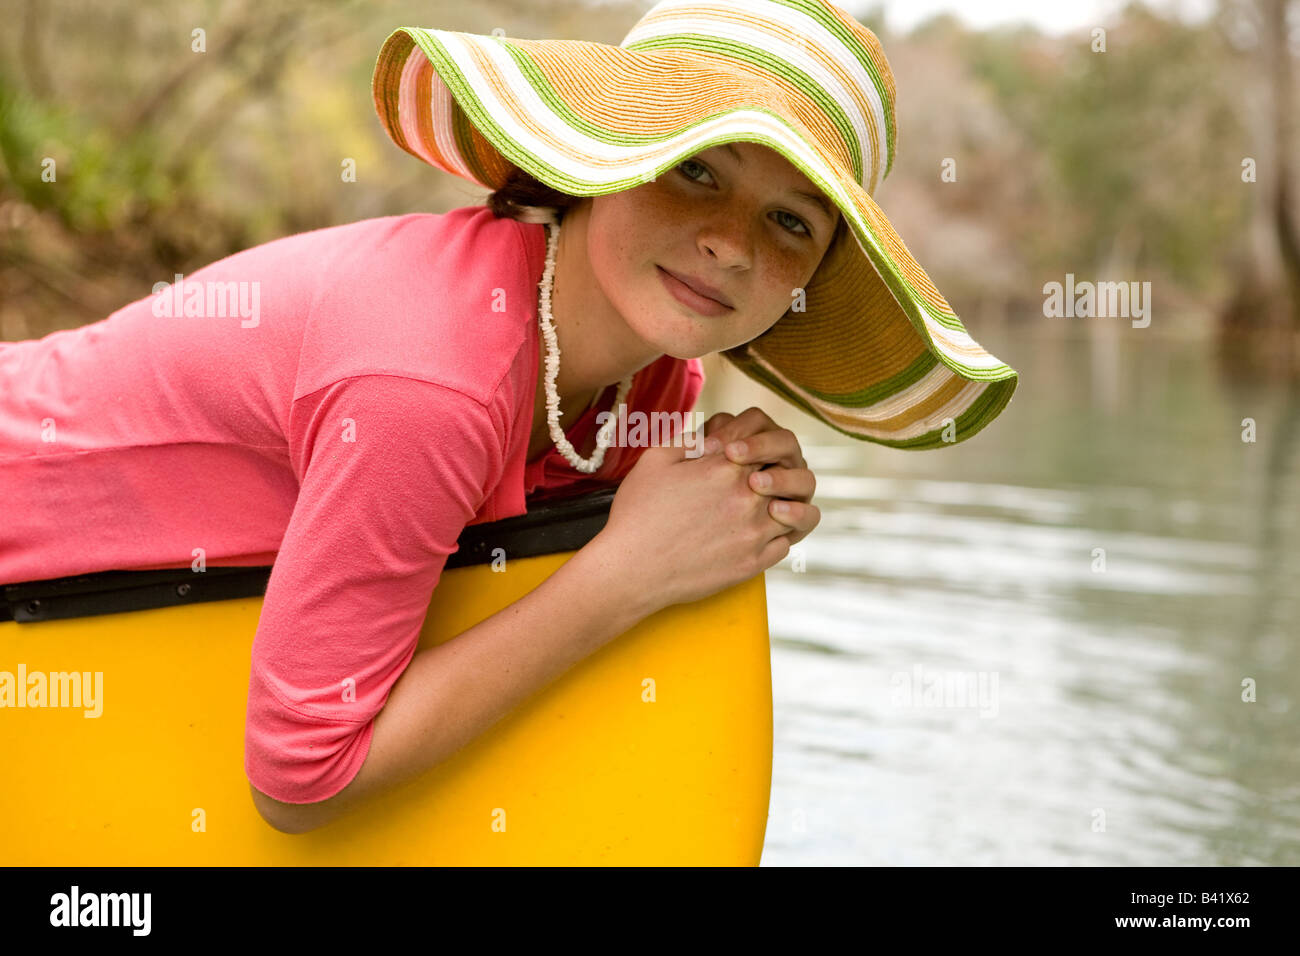 A young girl rests on her canoe, High Springs, Florida. - Stock Image